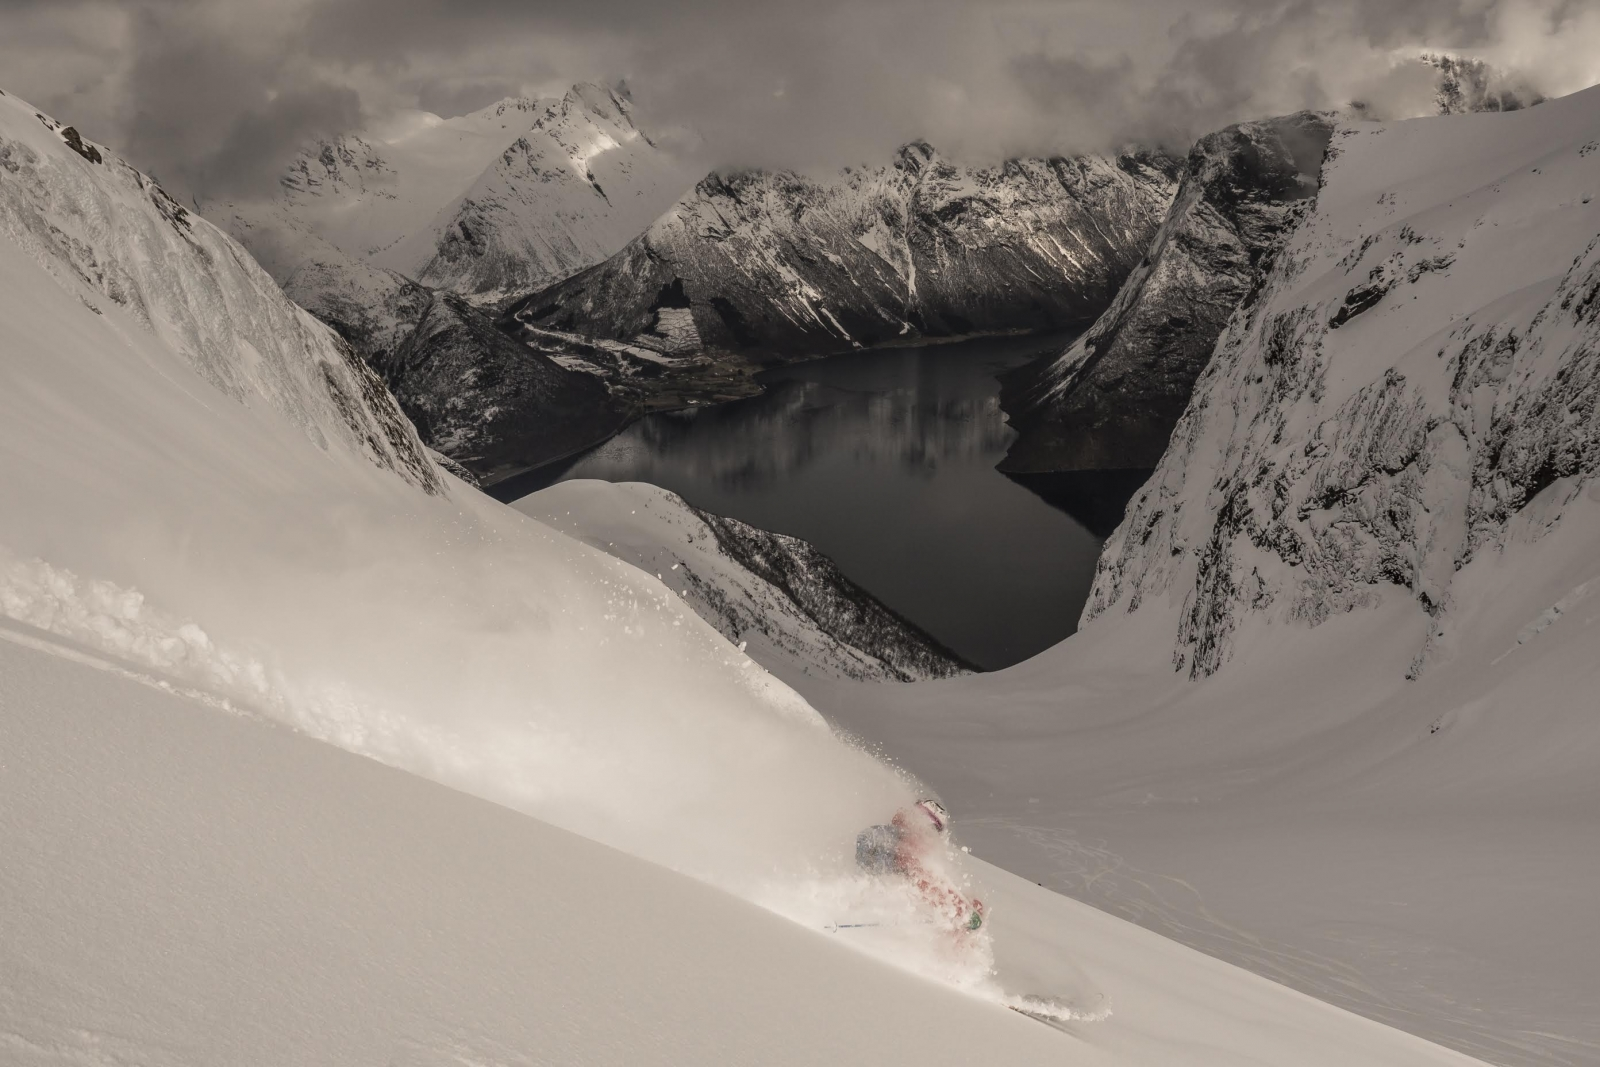 Ski Touring the Fjords of Norway, Norway Ski Touring, Ski Fjords